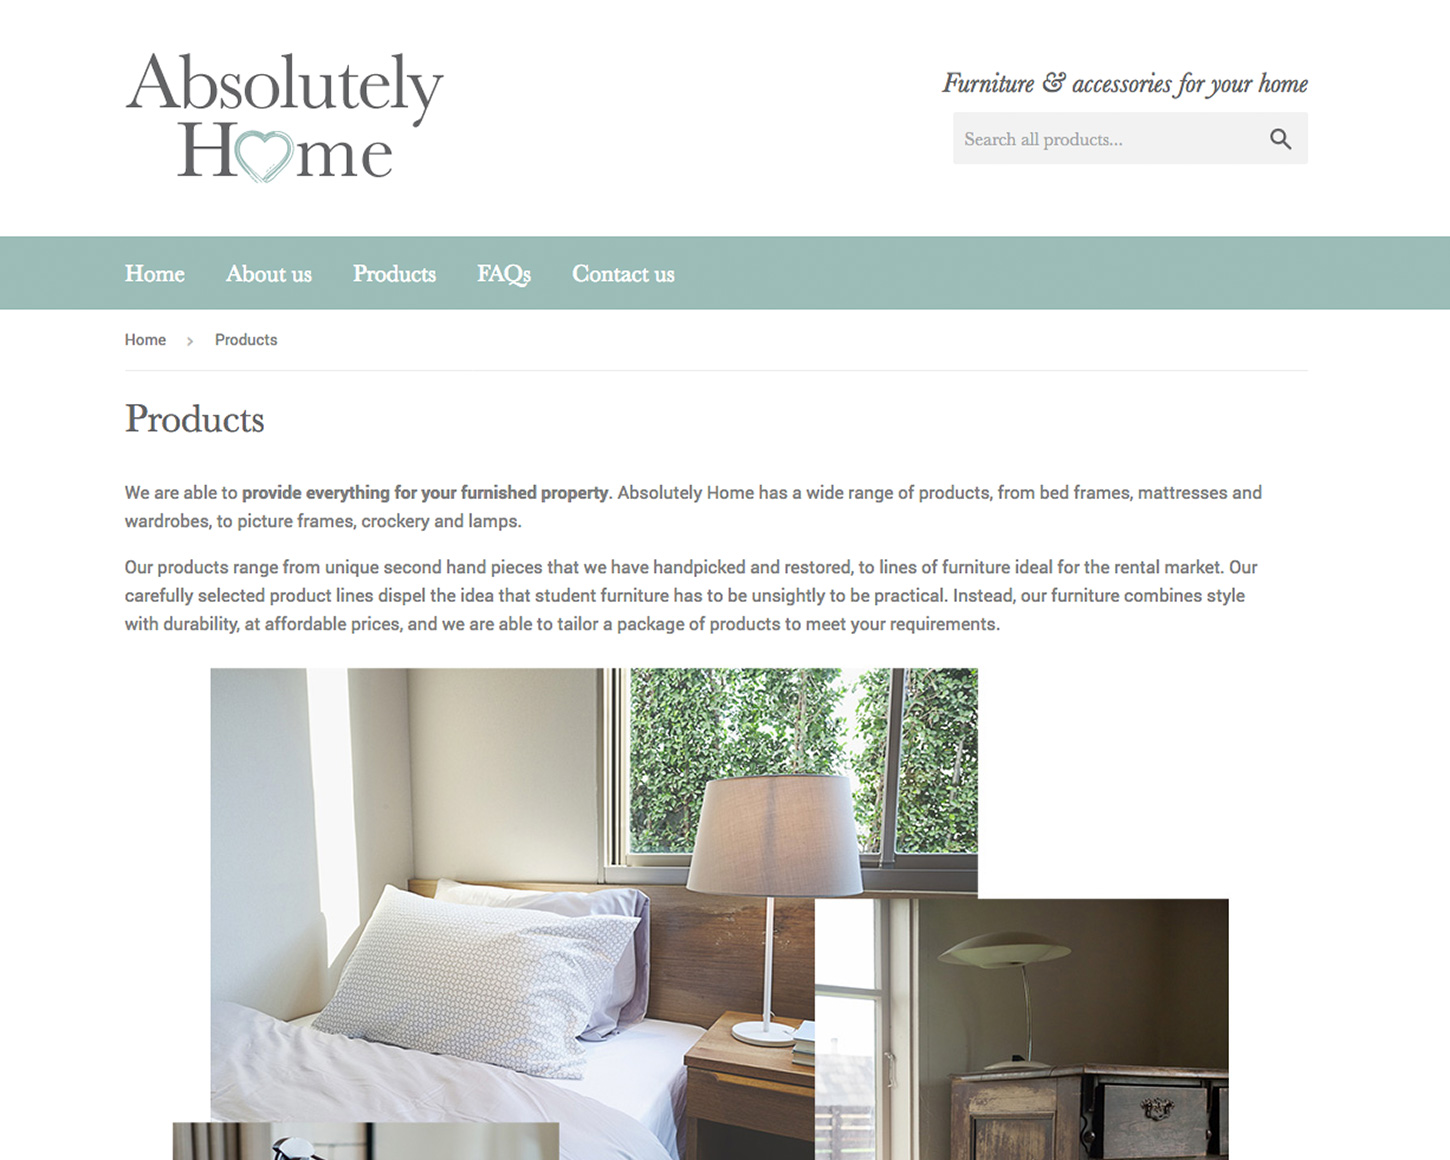 Absolutely Home website